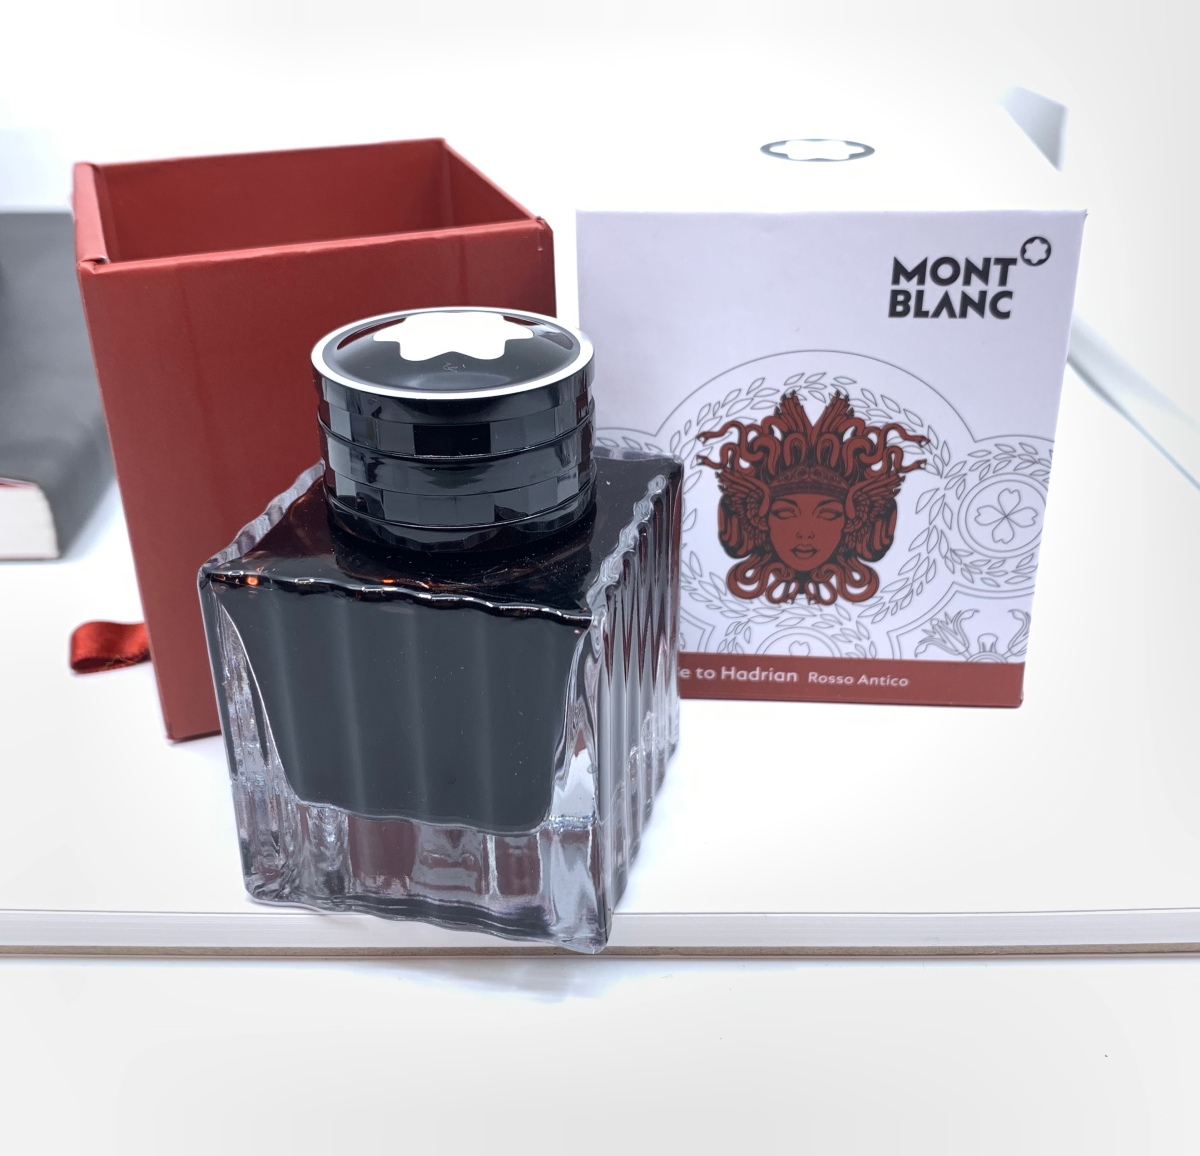 Montblanc Homage to Hadrian: Rosso Antico Review and GIVEAWAY!